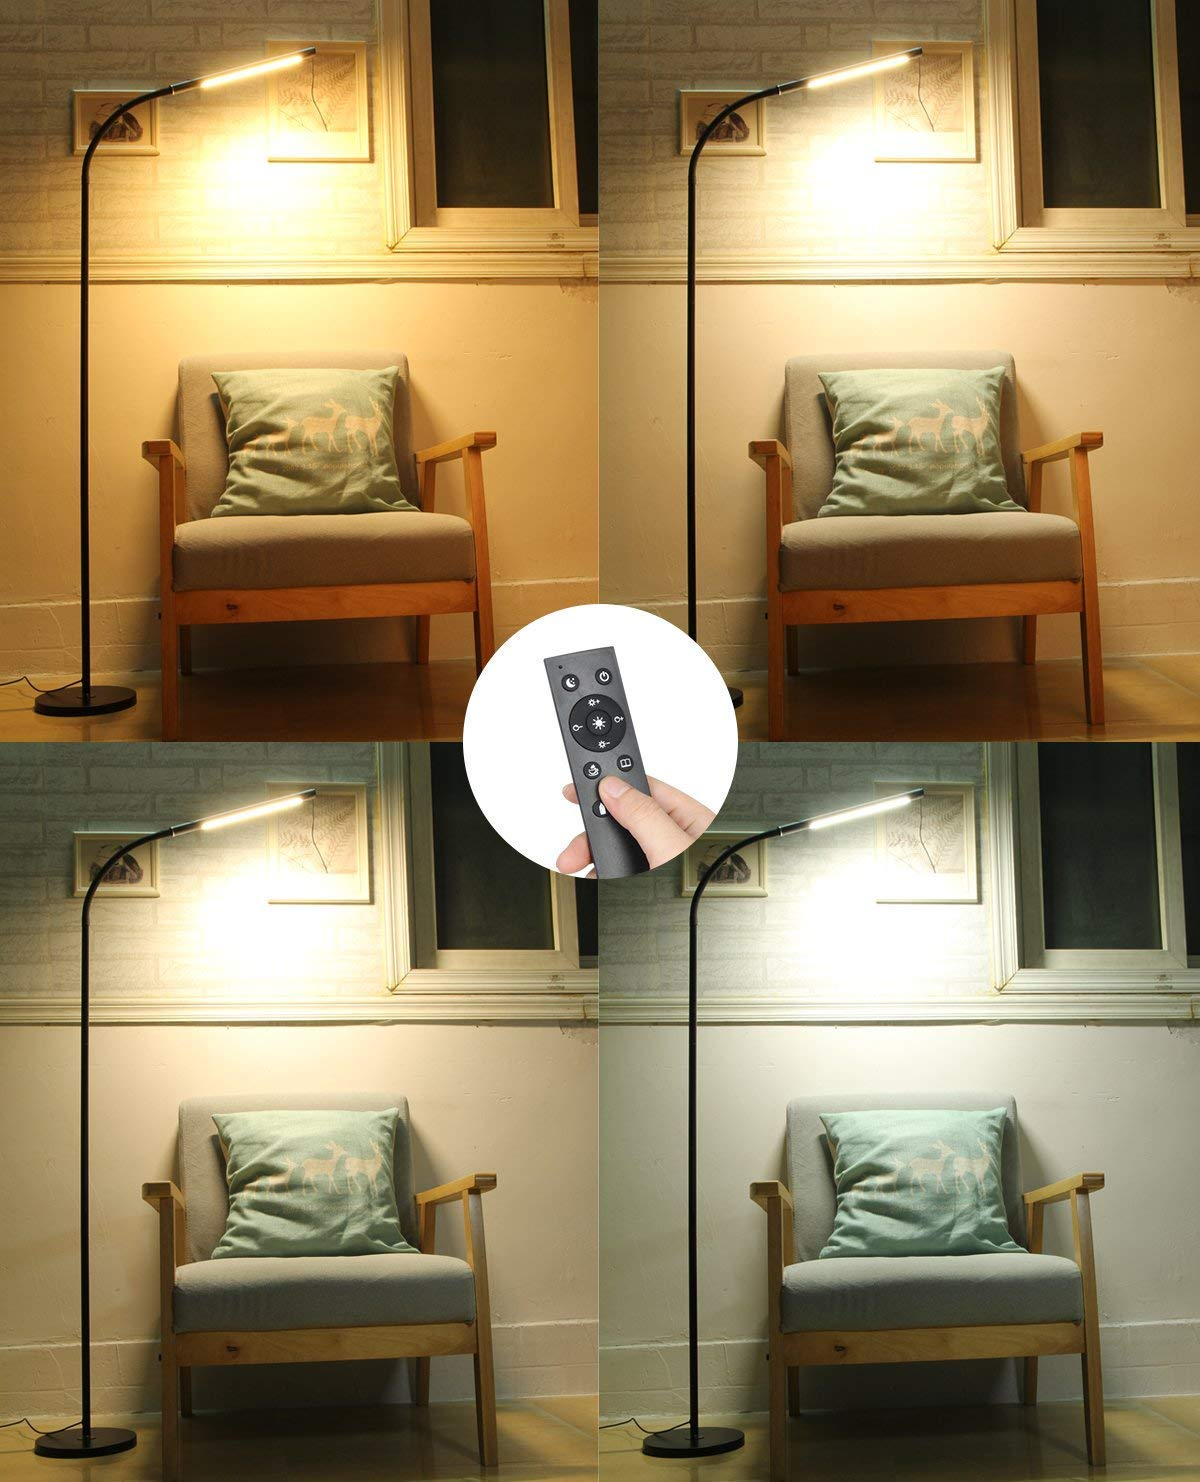 12W Eye-care Dimmable Remote Control /& Sensor Touch Switch Perfect for Reading Bedroom Living Room Sumerflos LED Floor Lamp Office Colors and Brightness Stepless Dimming